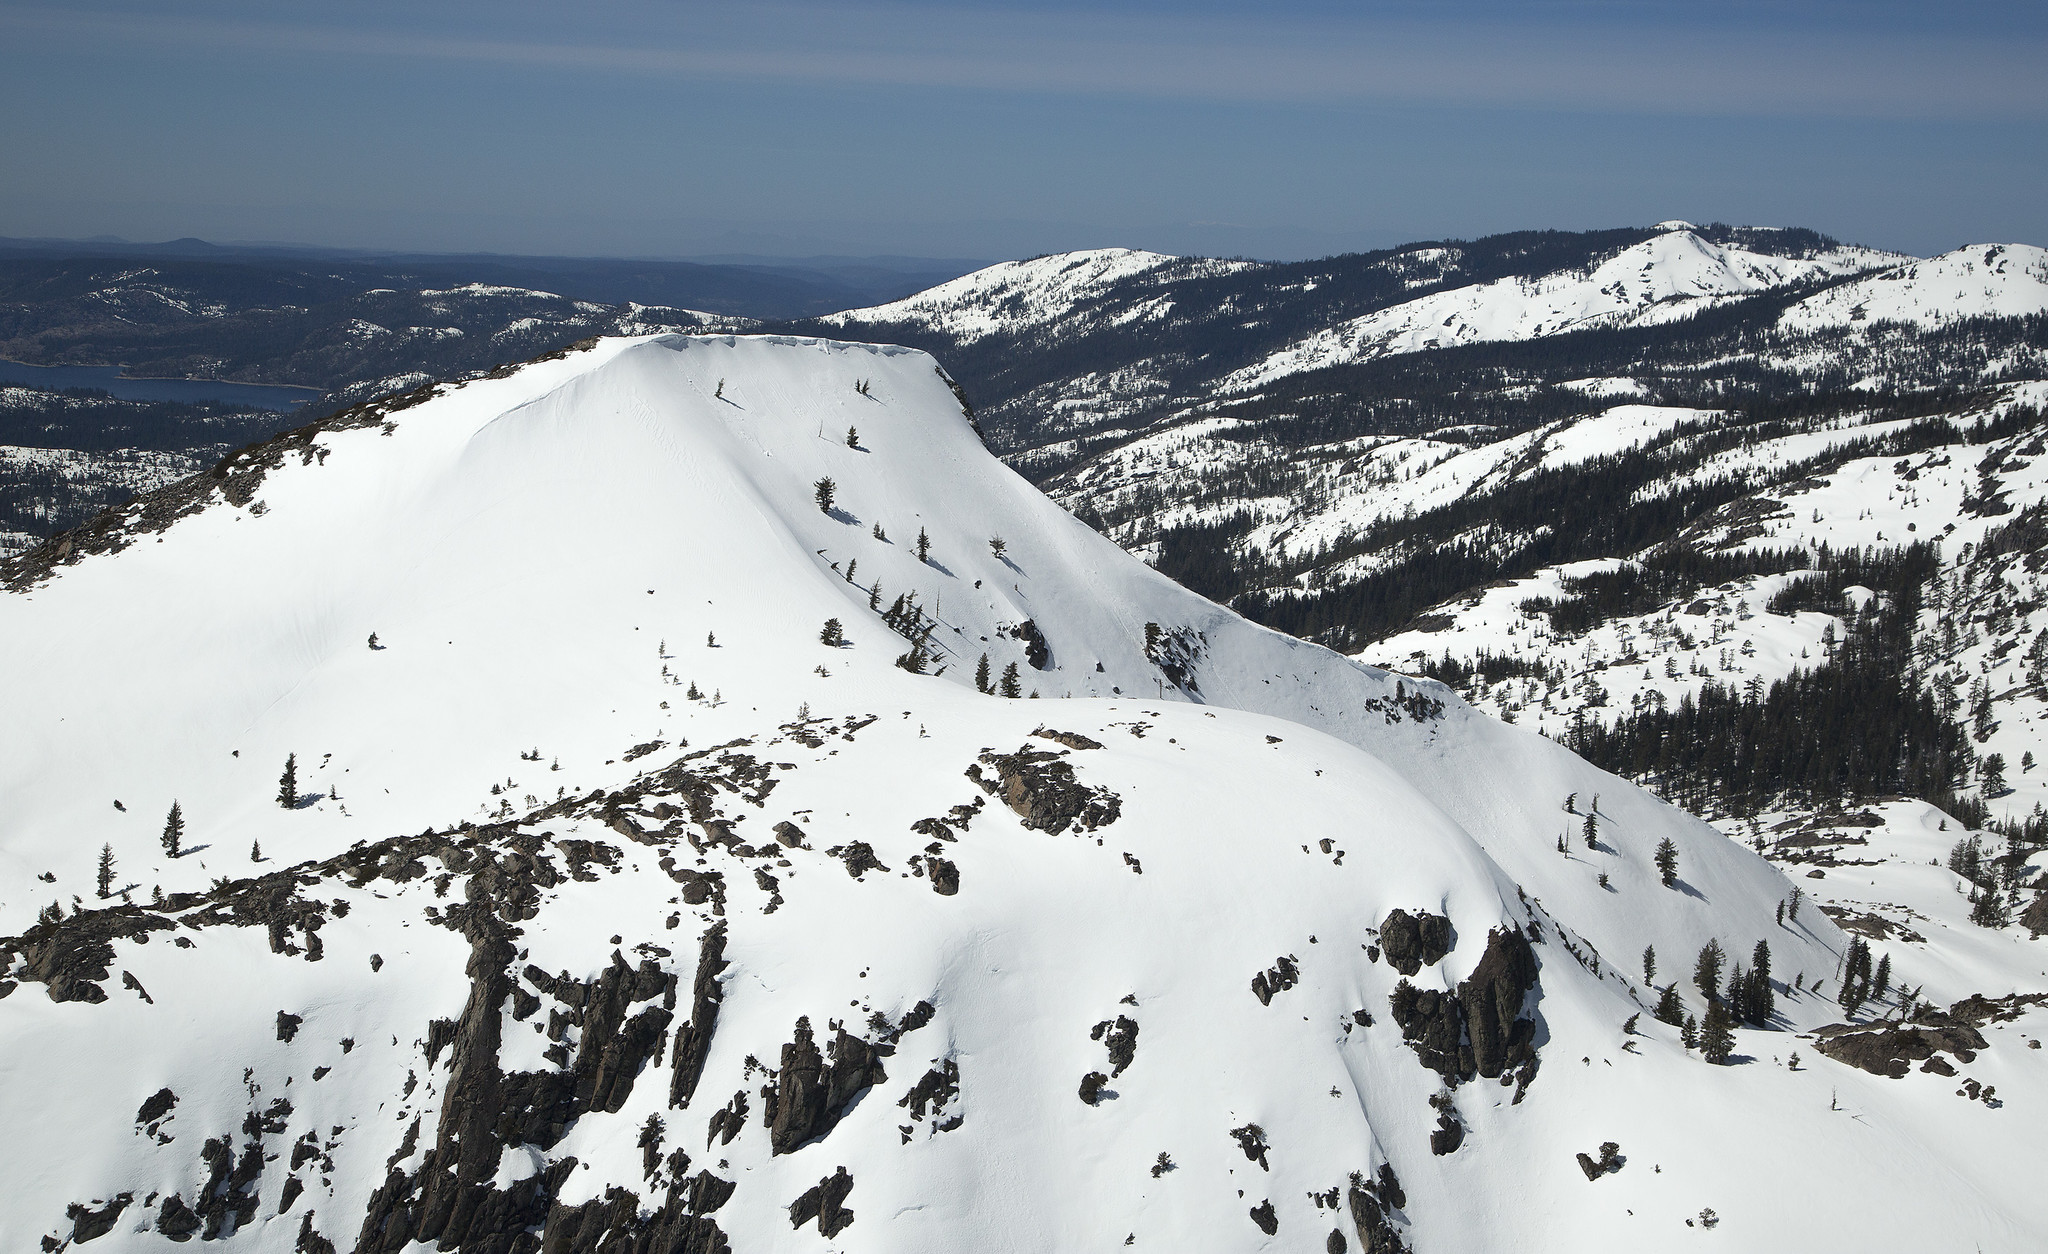 Record snowfall covers the Sierra Nevada mountains. A snow survey at the Meadow Lake snow course revealed the area received 160% of average precipitation.